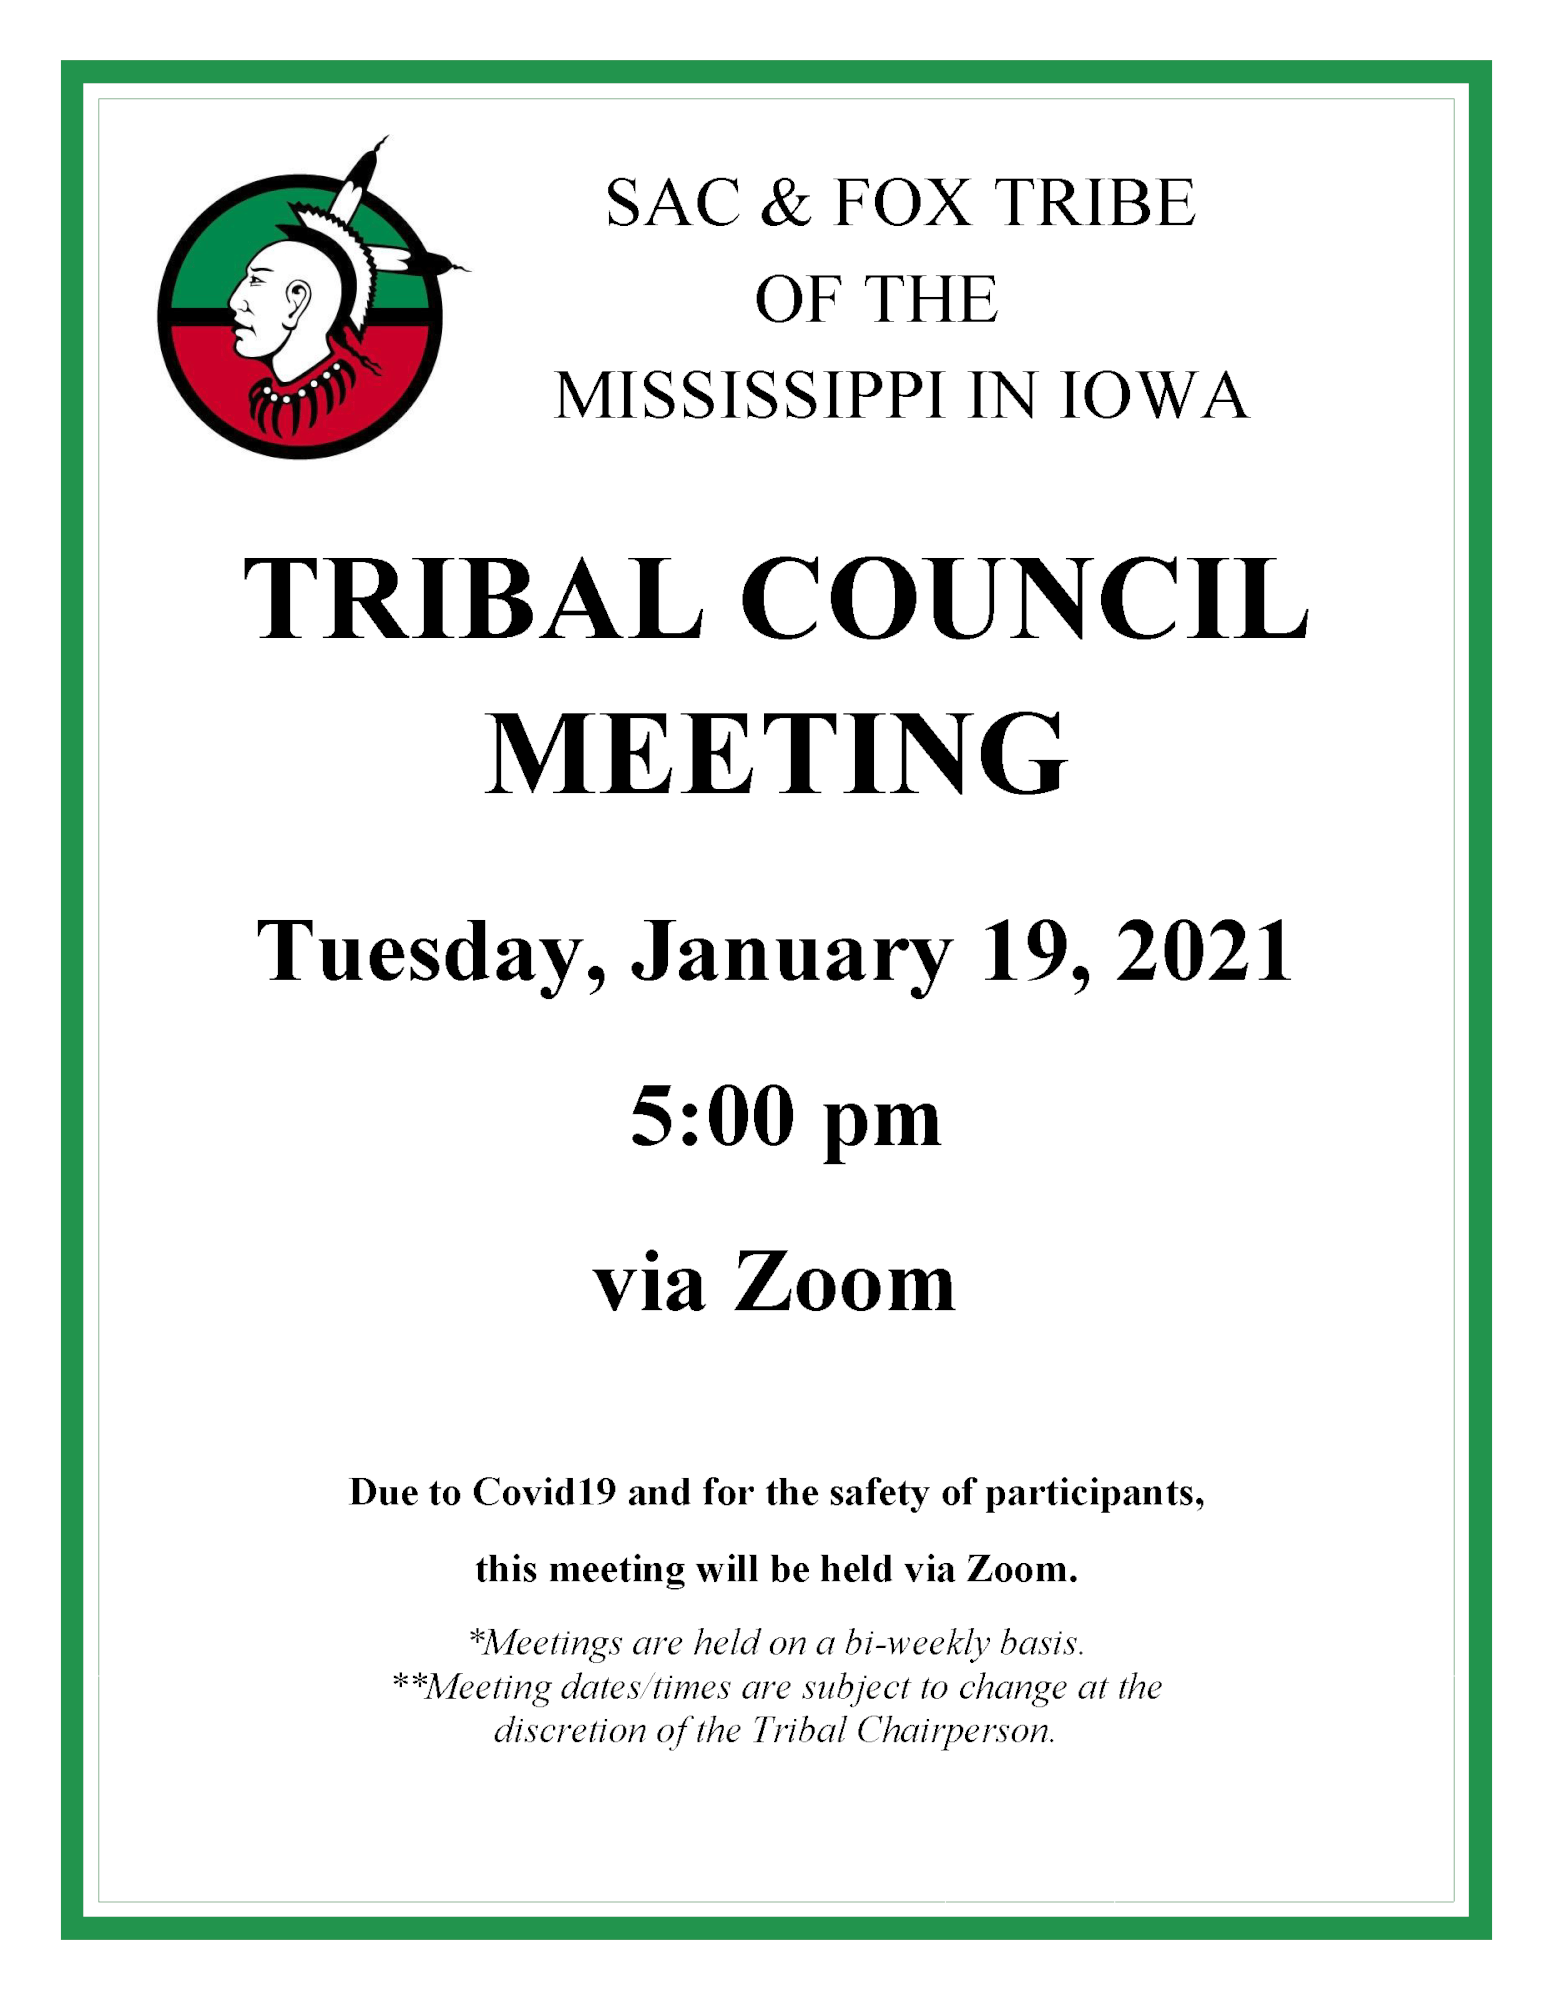 Notification of the January 19, 2021 Tribal Council Meeting